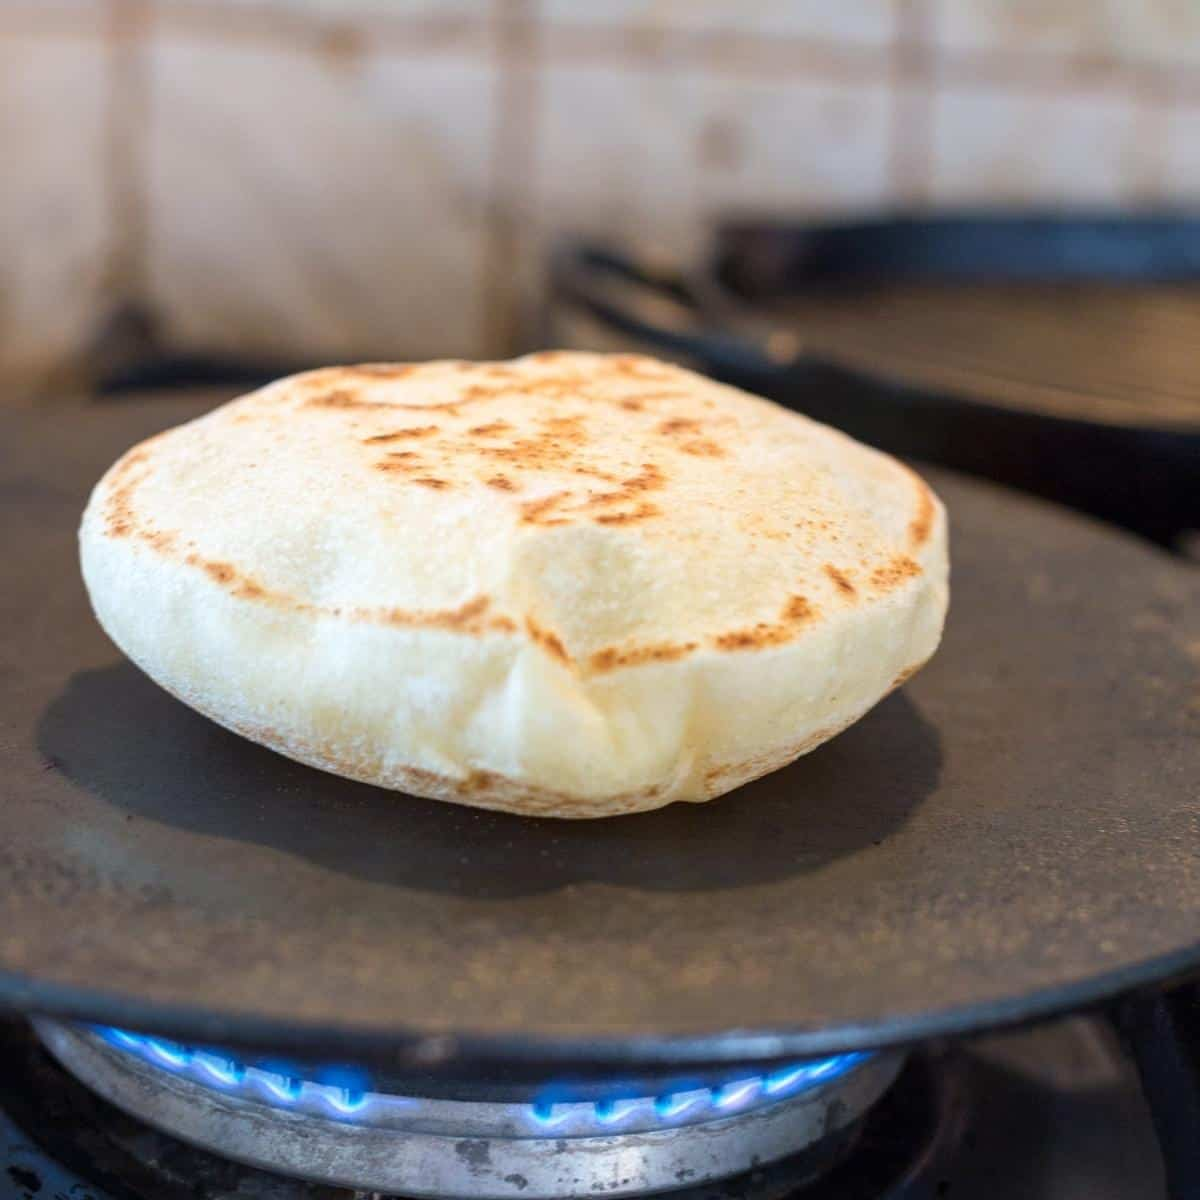 A pita cooking on the skillet.